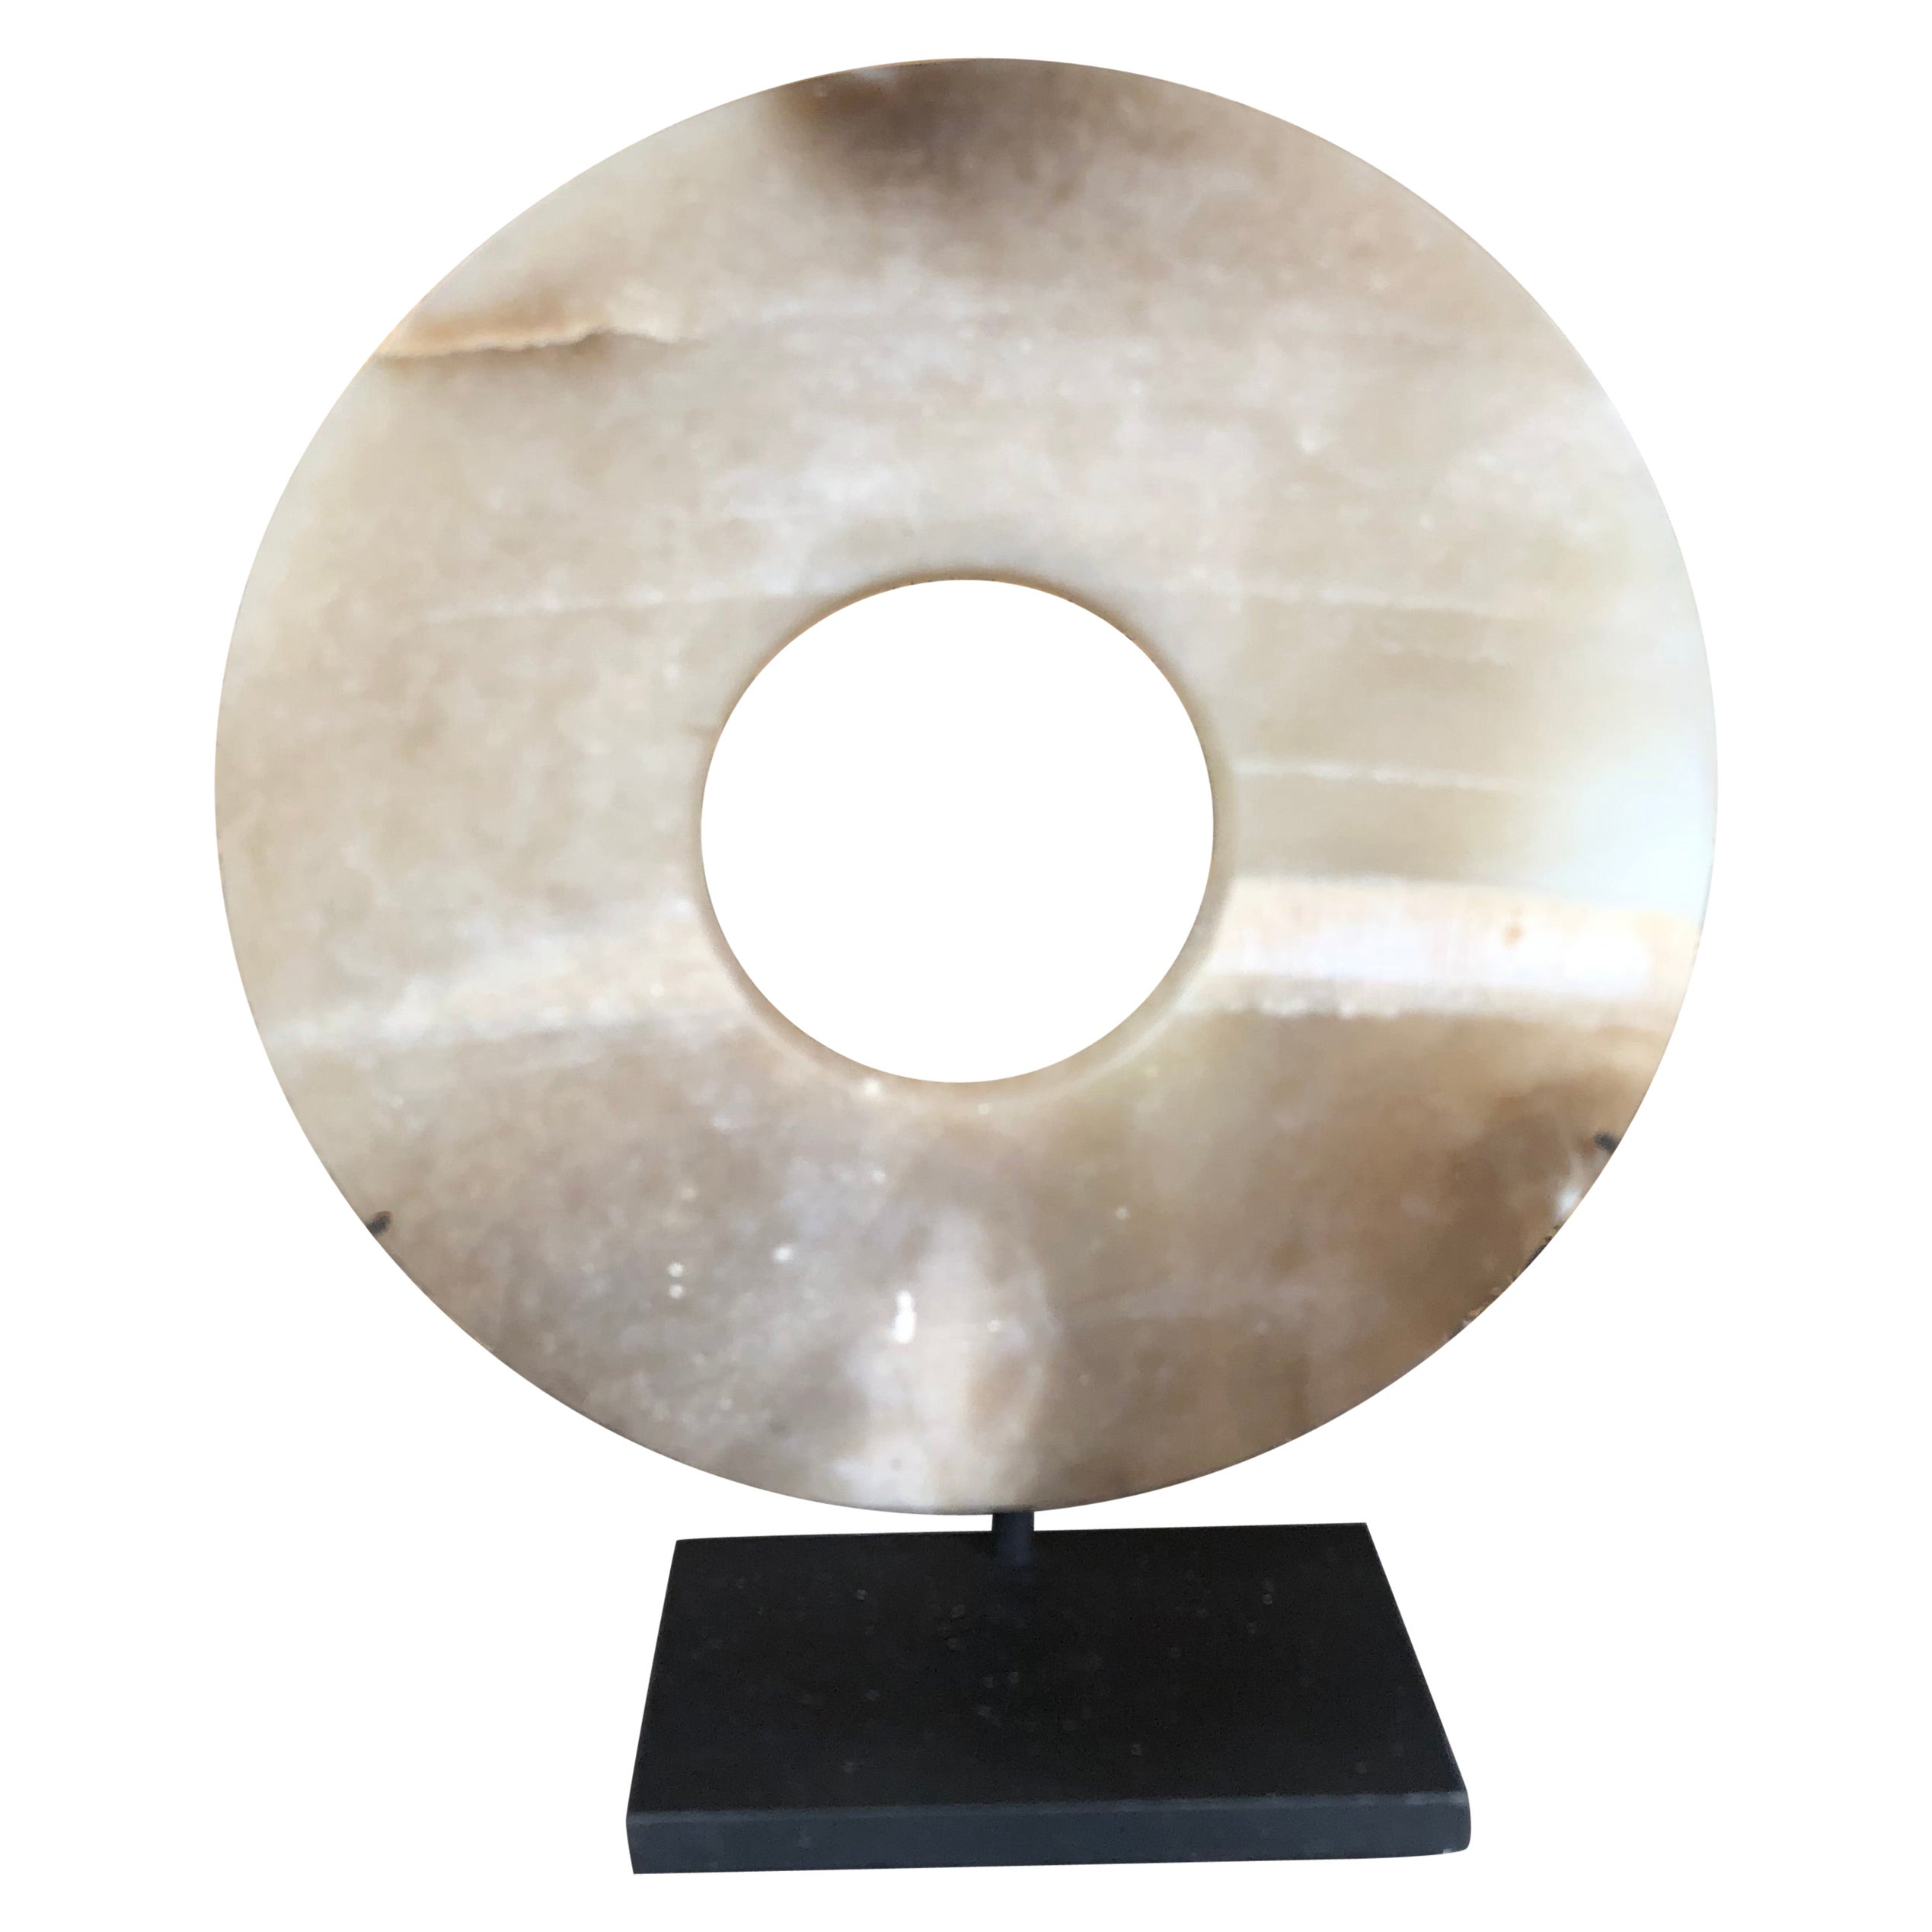 Important Ancient Superb Chinese Round Jade Bi Disc, 2000 BCE